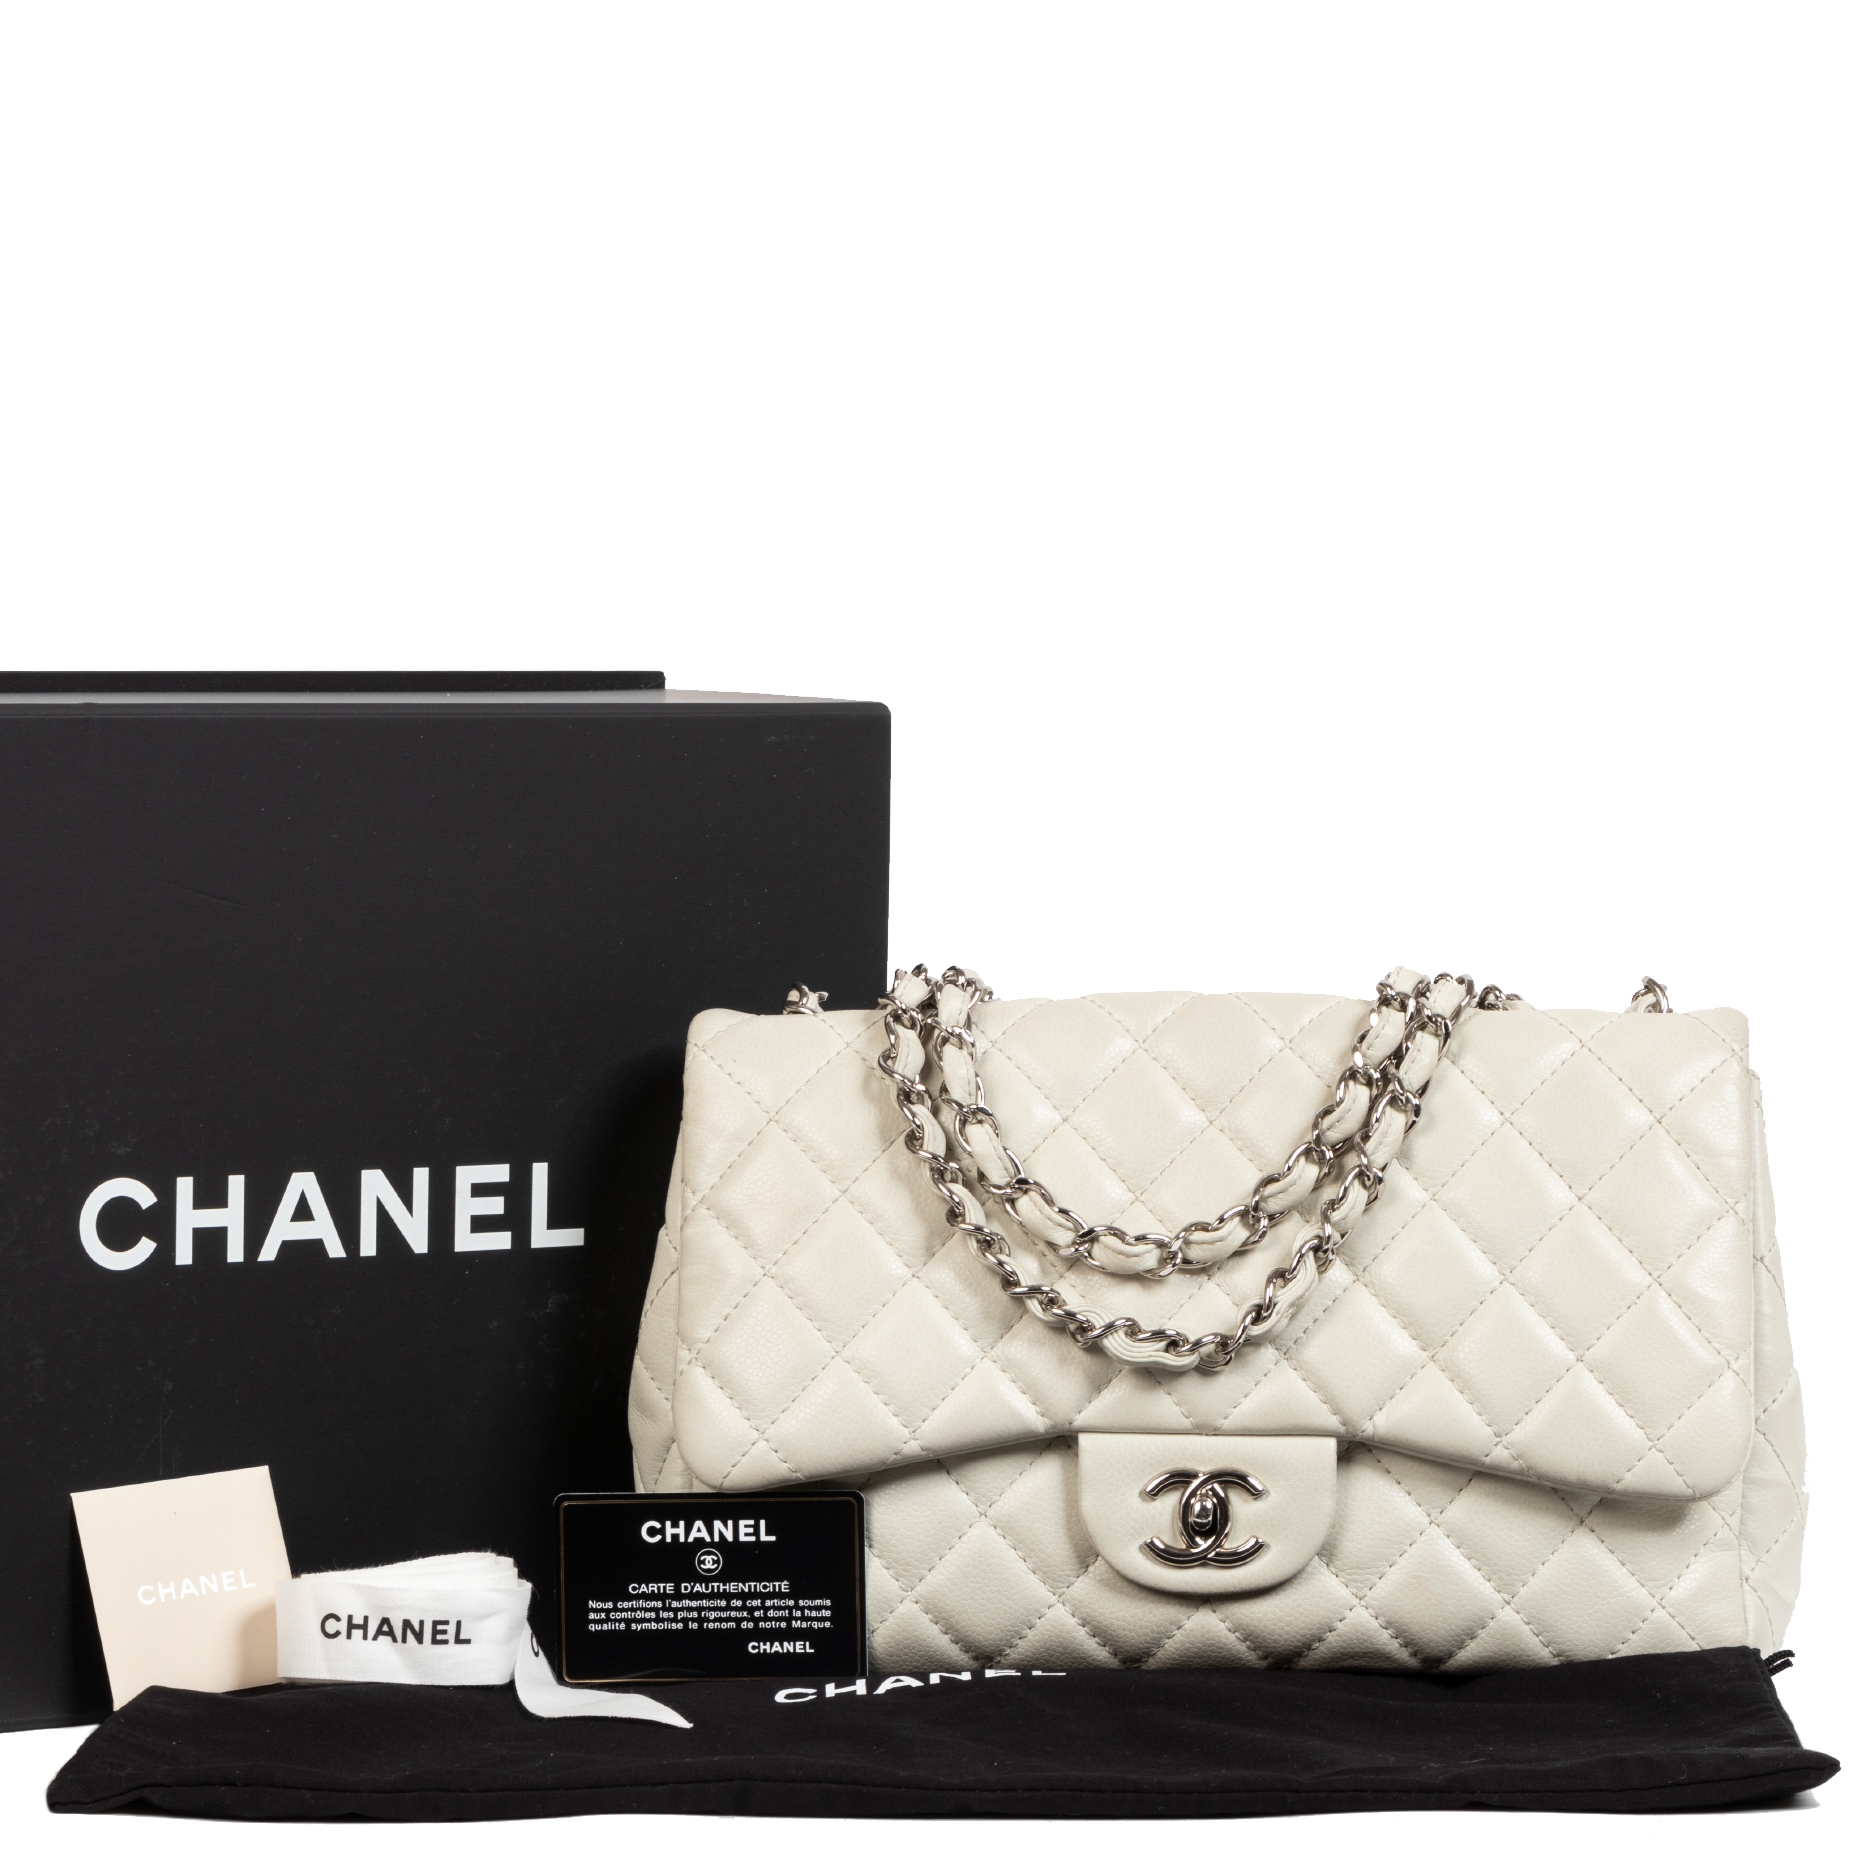 Buy and sell preloved and new designer bags online at Labellov secondhand luxury